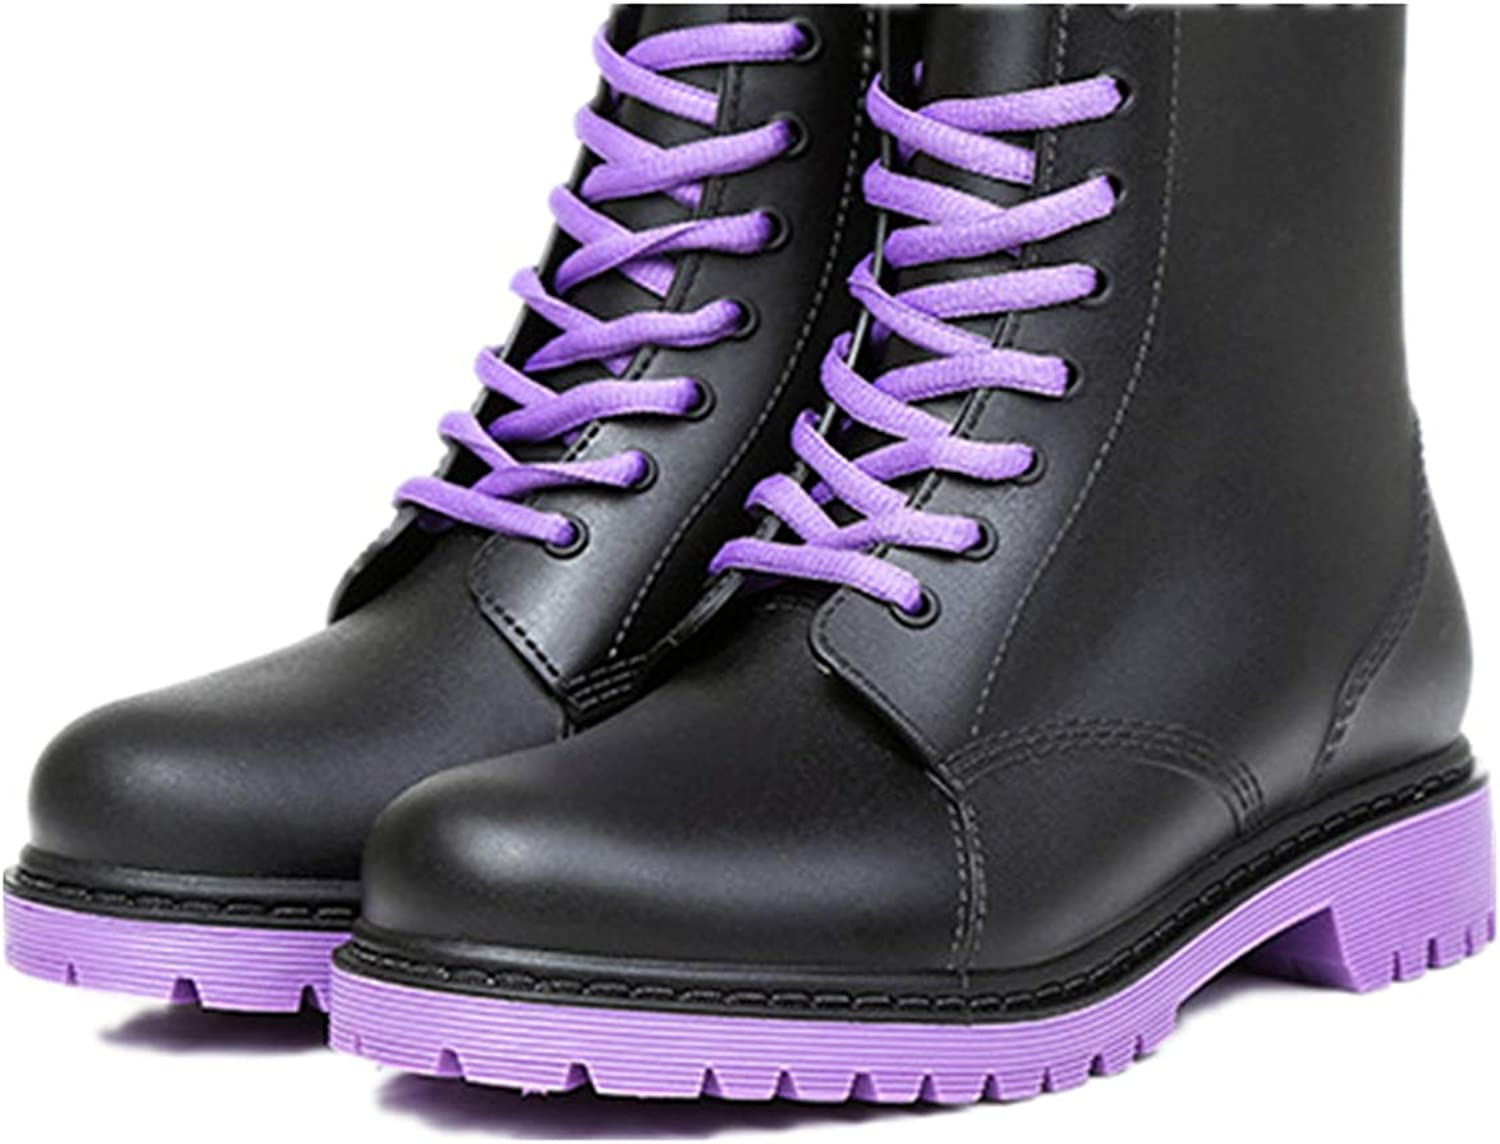 Super color Women's Waterproof Rain Boots Lace up Fashion Non-Slip Rubber Snow shoes Garden Booties